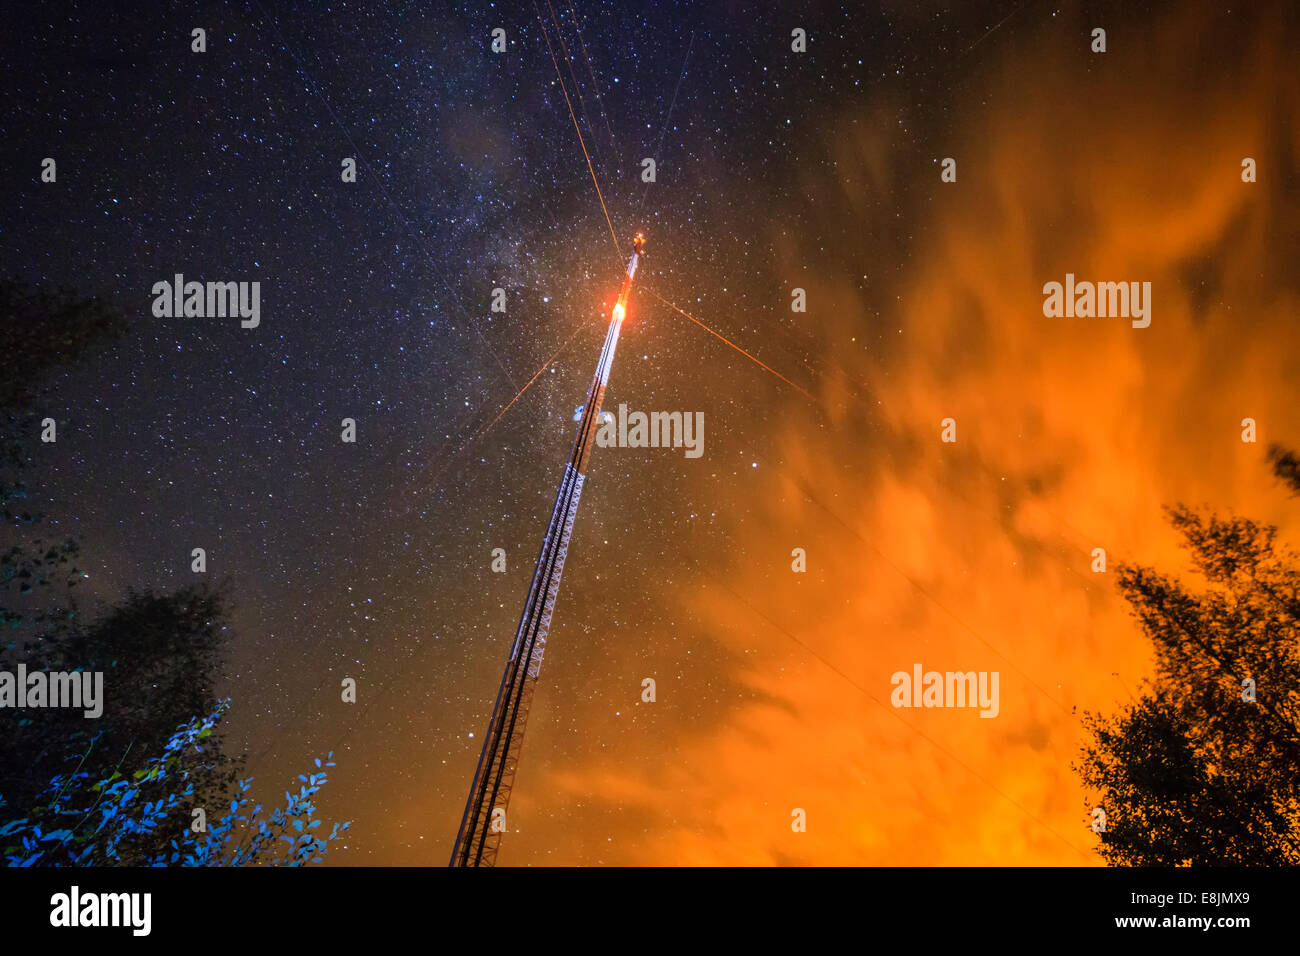 A telecommunication link tower with a blinking light. Night sky with stars on the background. - Stock Image